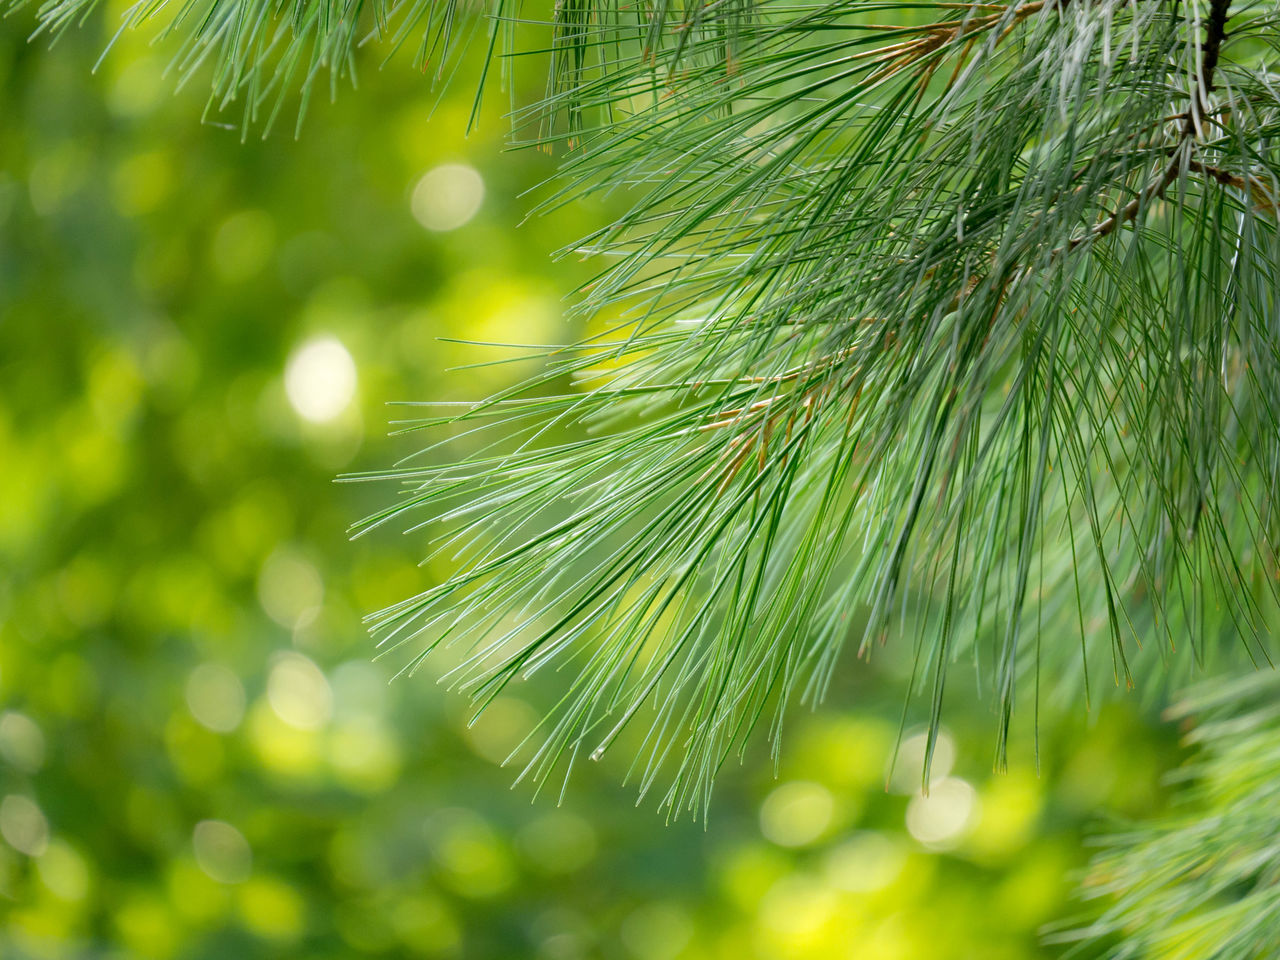 nature, green color, growth, beauty in nature, close-up, no people, focus on foreground, outdoors, day, leaf, freshness, tree, branch, fragility, water